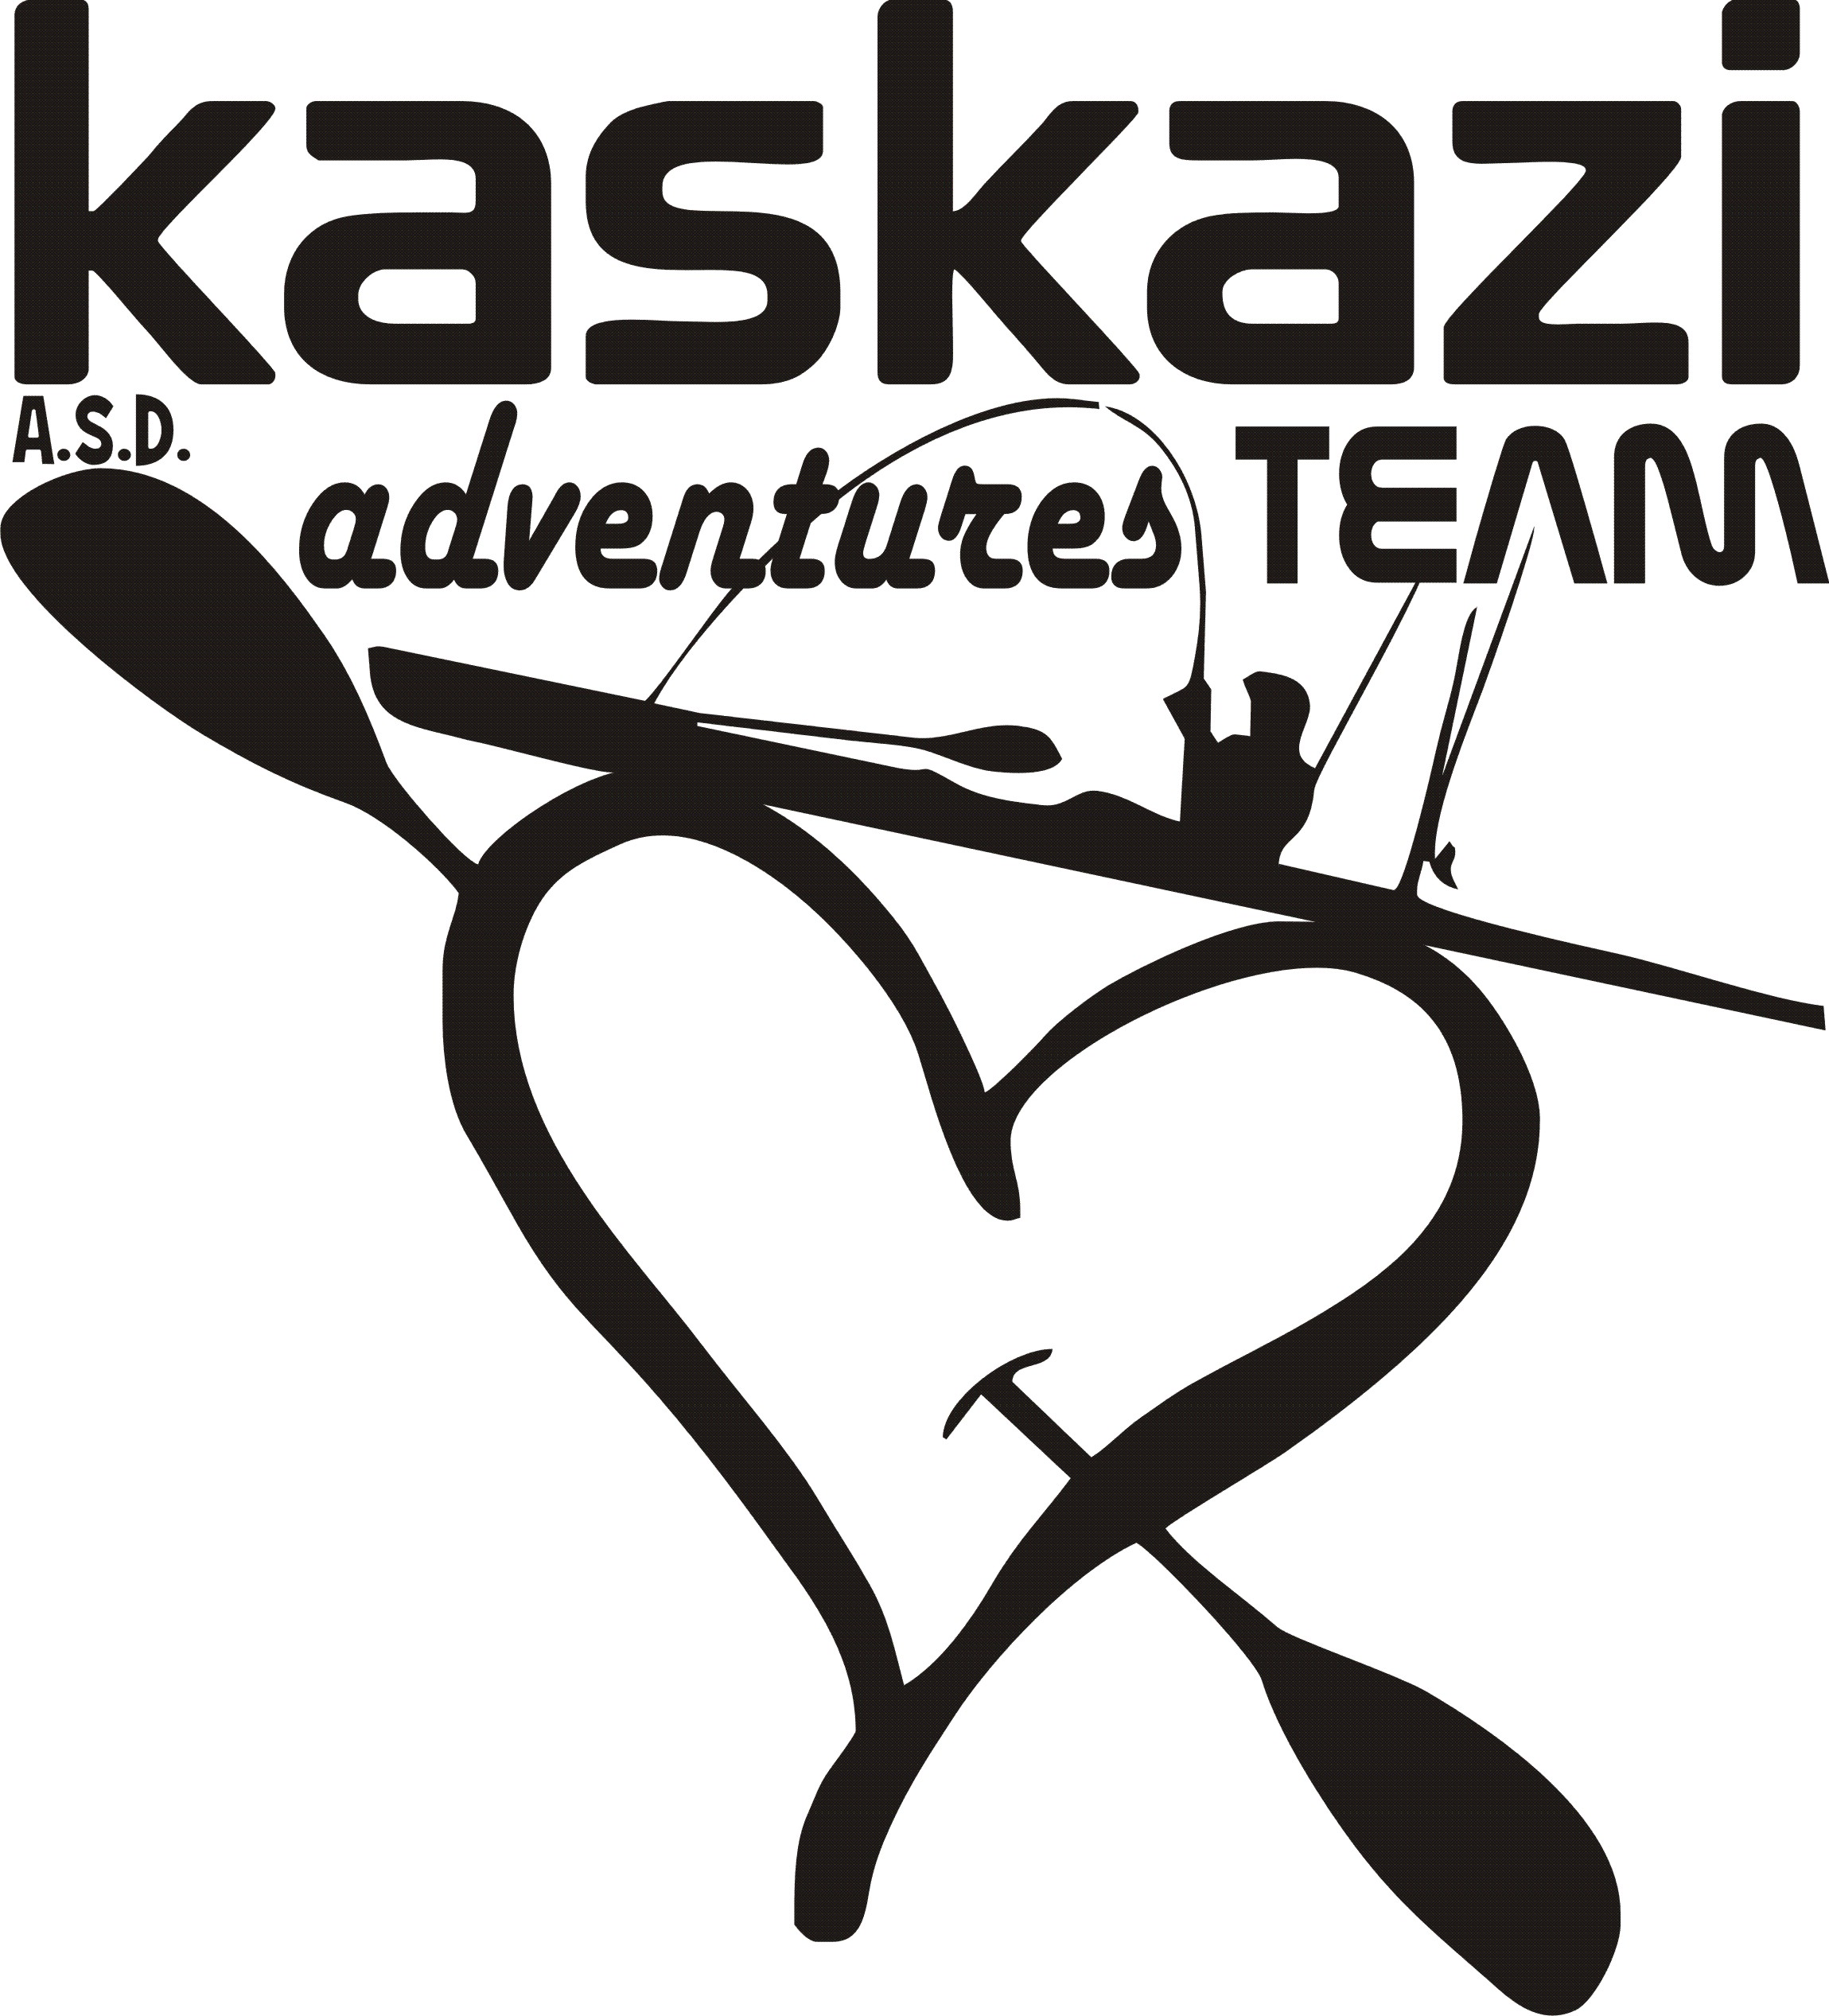 Kaskazi Adventures Team,